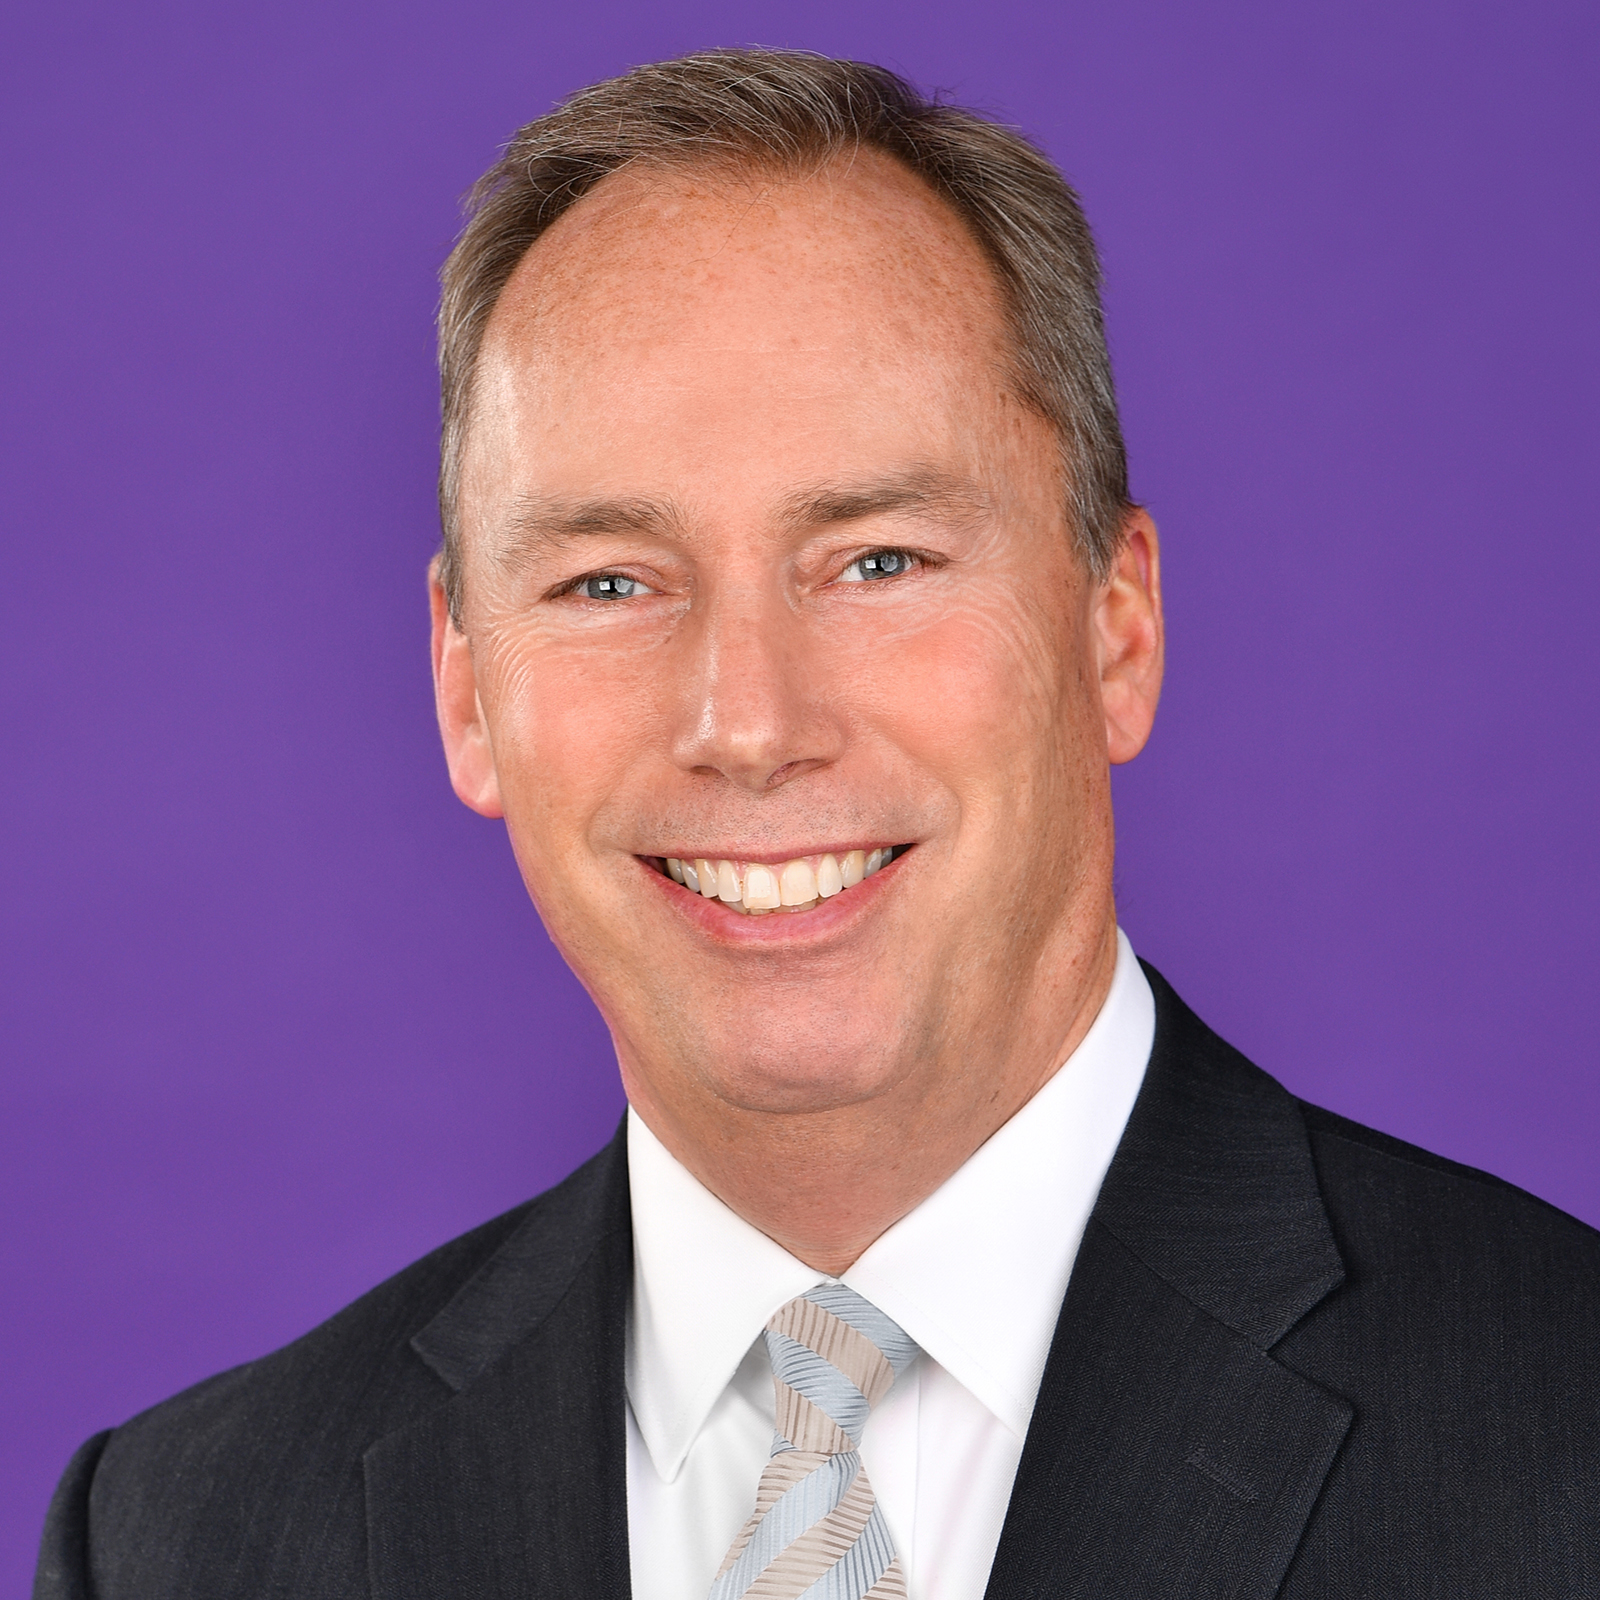 Olivet_staff promotion_executive vice president_chief financial officer_David Pickering_alumnus_Web.jpg